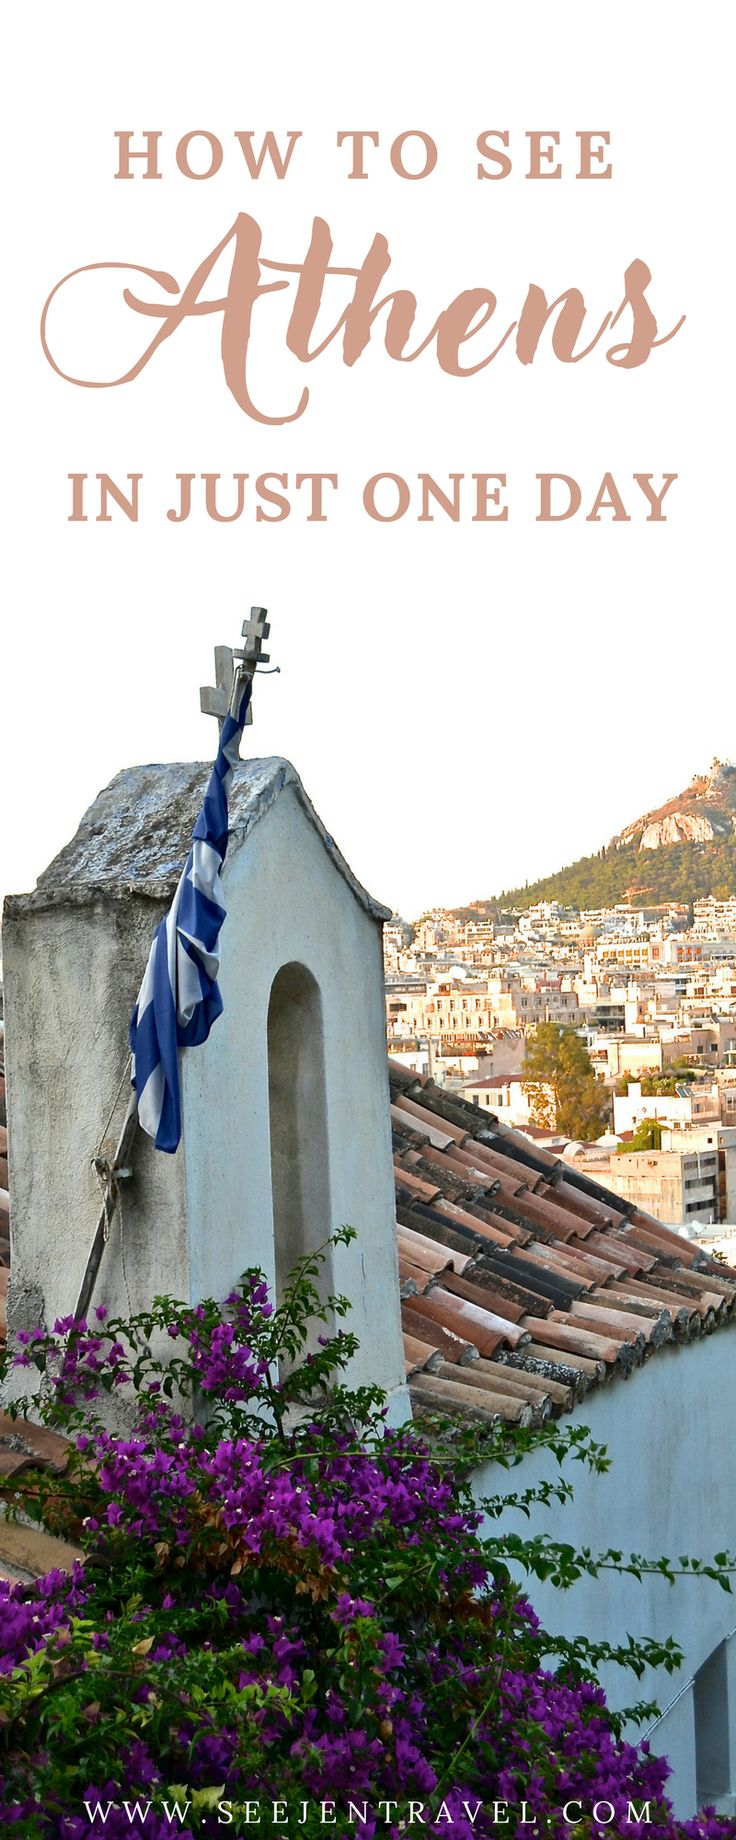 A guide to exploring Athens, Greece in just one day. How to organize your day so that you are able to see the best of the city in 24 hours, from ruins to beautiful views to street art, restaurants and more. Practical tips for your trip to Greece. | Up and Away Travel Blog #Athens #Greece